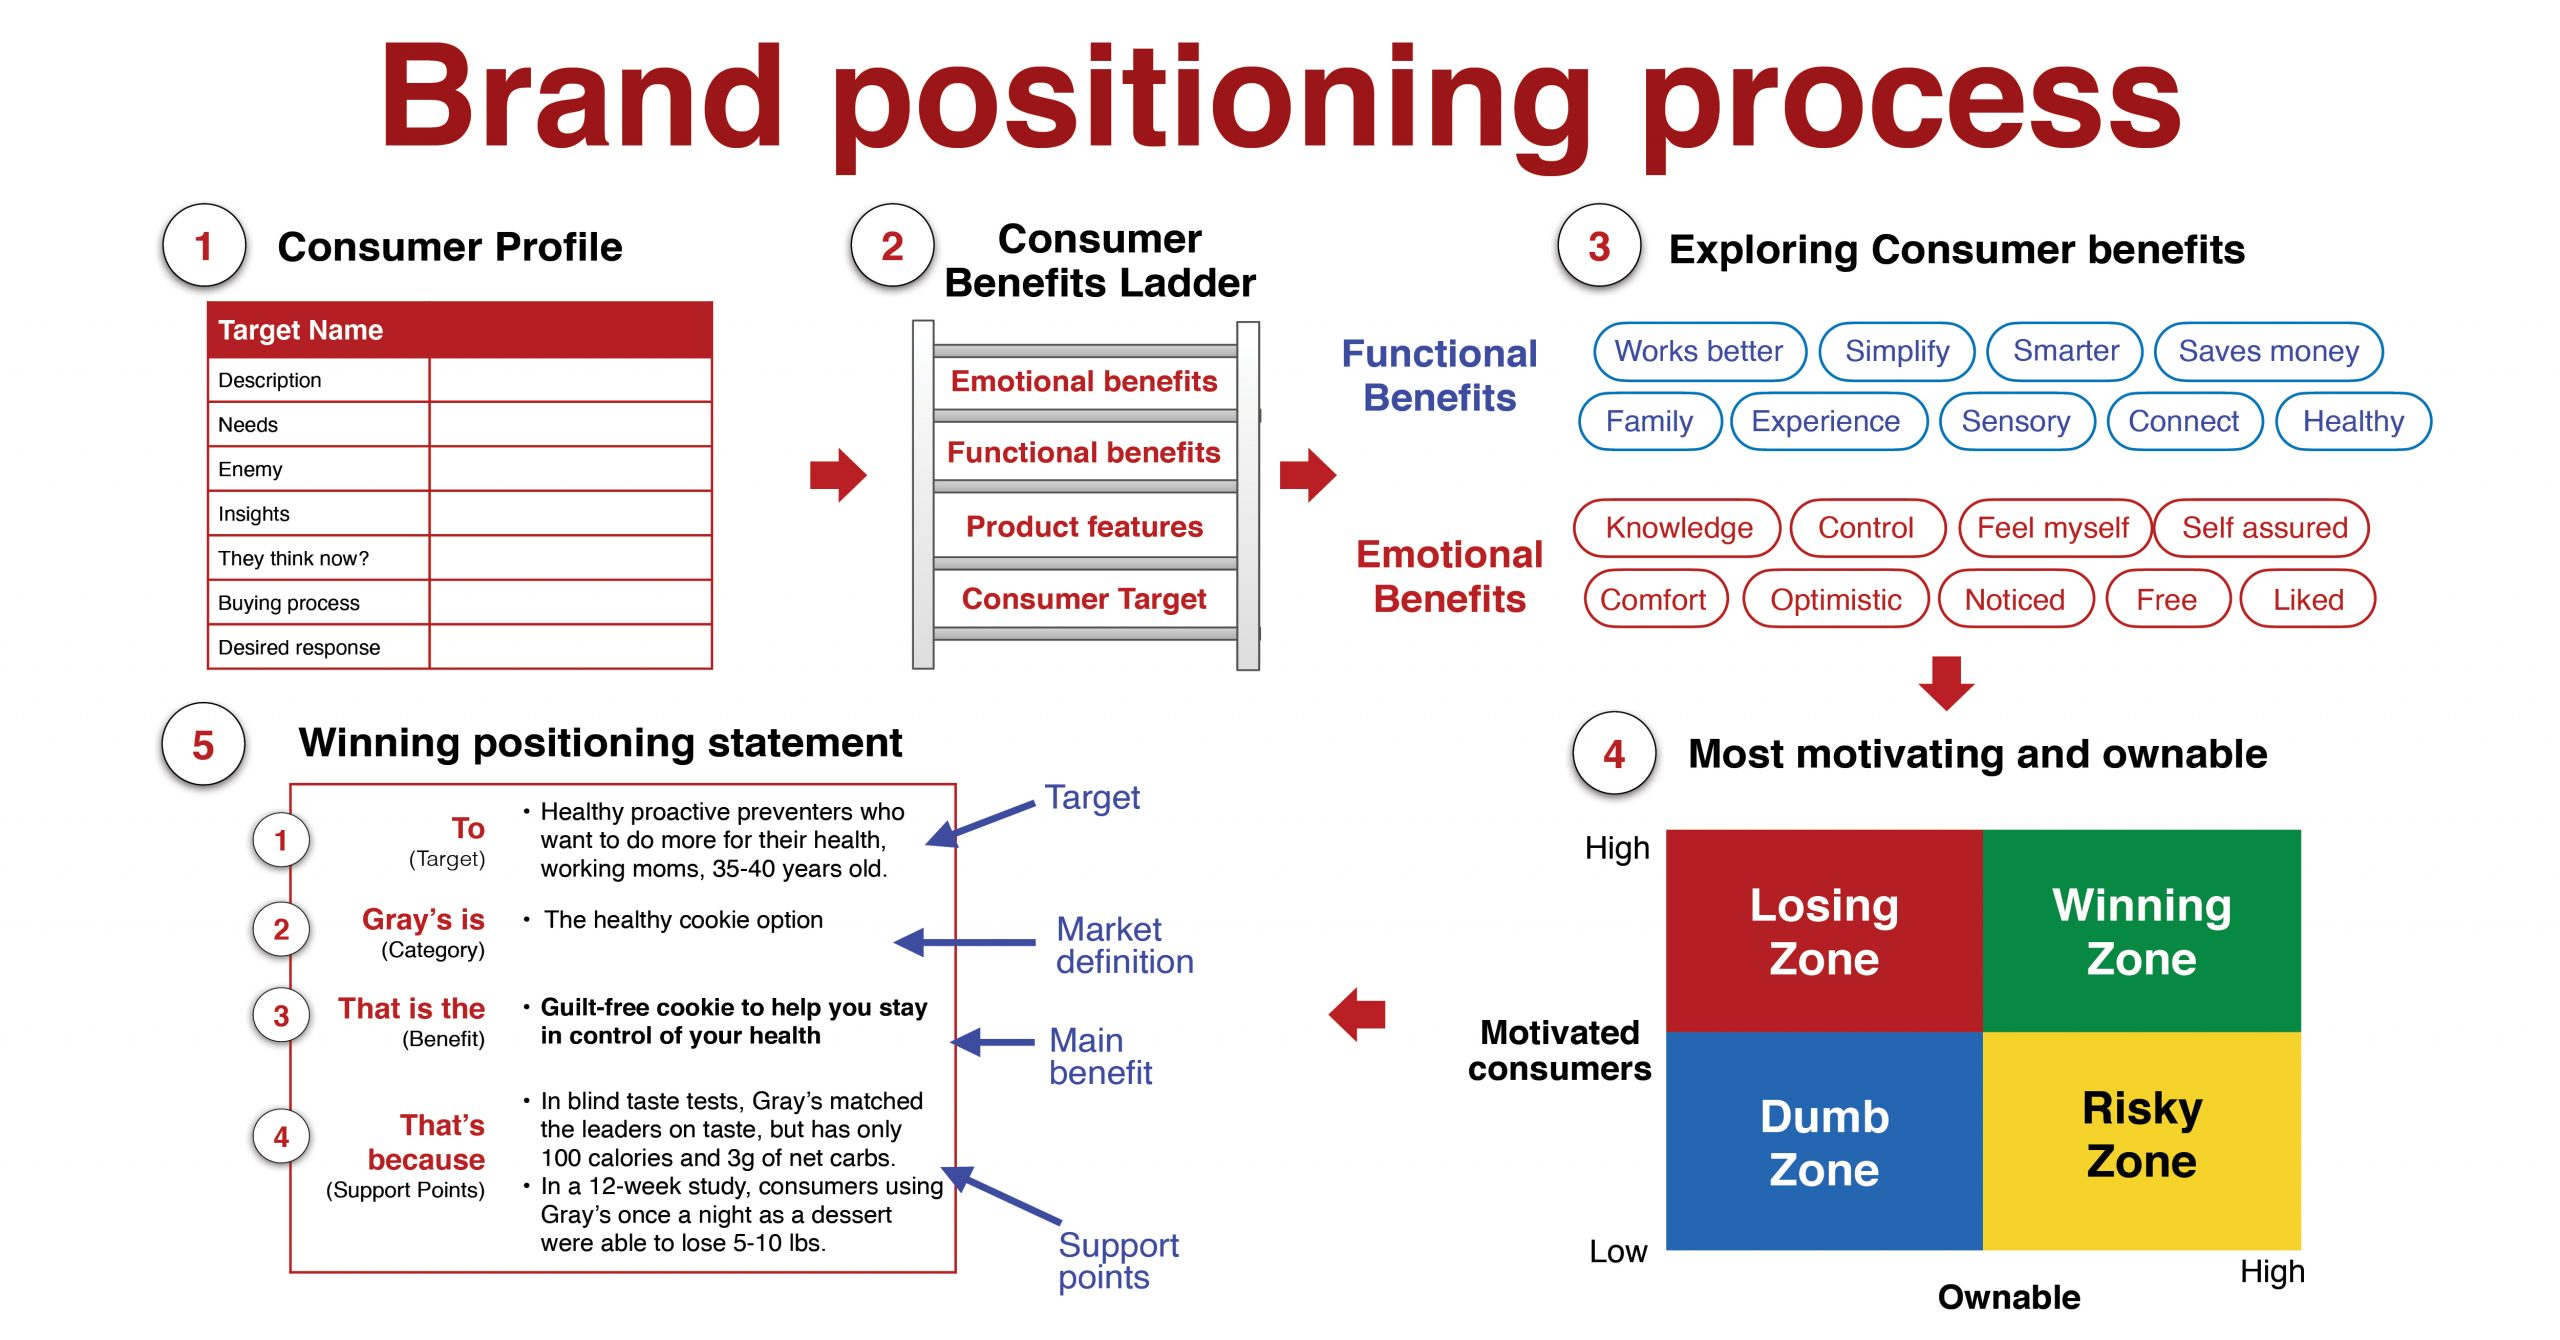 brand positioning process and brand positioning statement